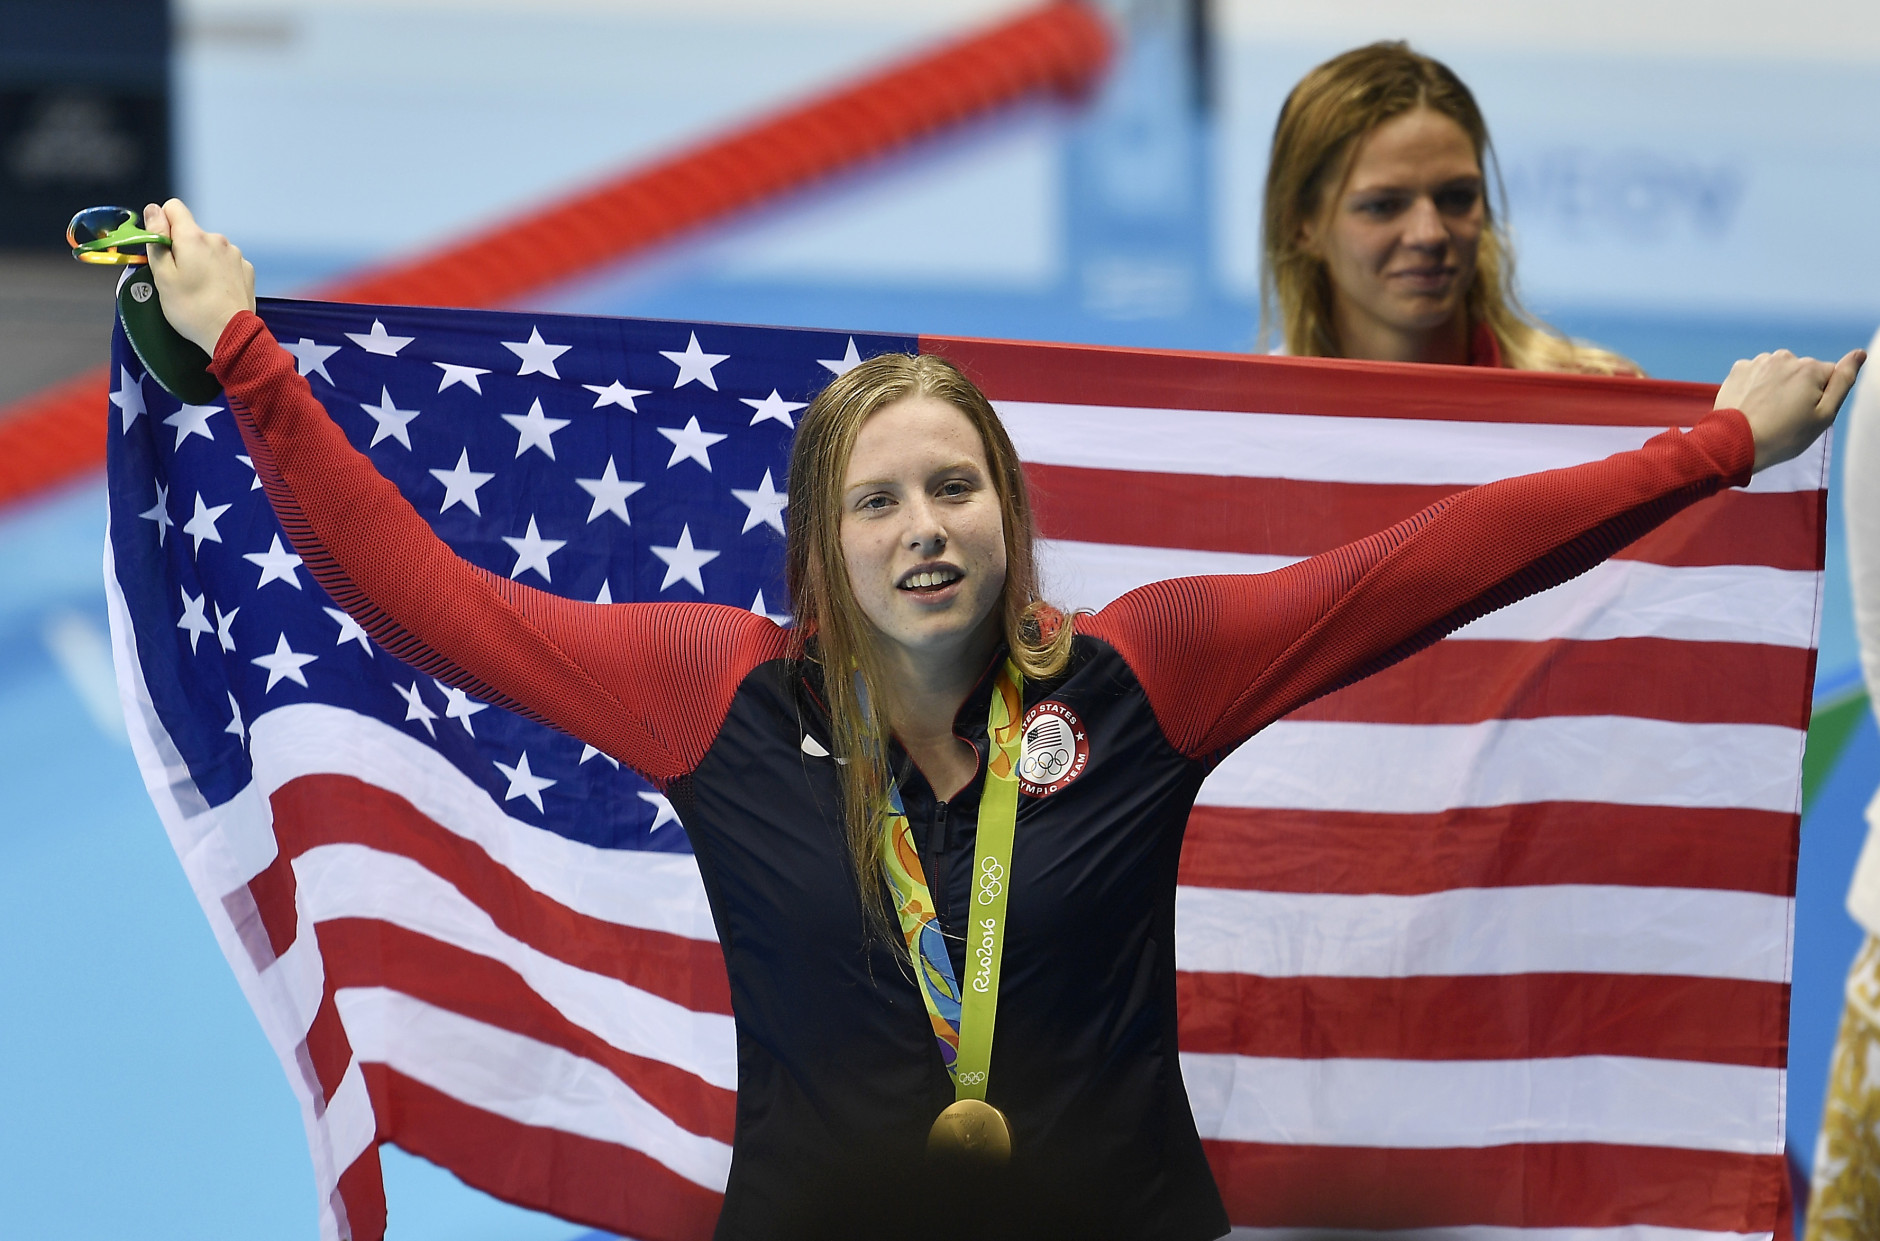 United States' gold medal winner Lilly King celebrates with her country's flag after the women's 100-meter breaststroke final during the swimming competitions at the 2016 Summer Olympics, Tuesday, Aug. 9, 2016, in Rio de Janeiro, Brazil. (AP Photo/Martin Meissner)